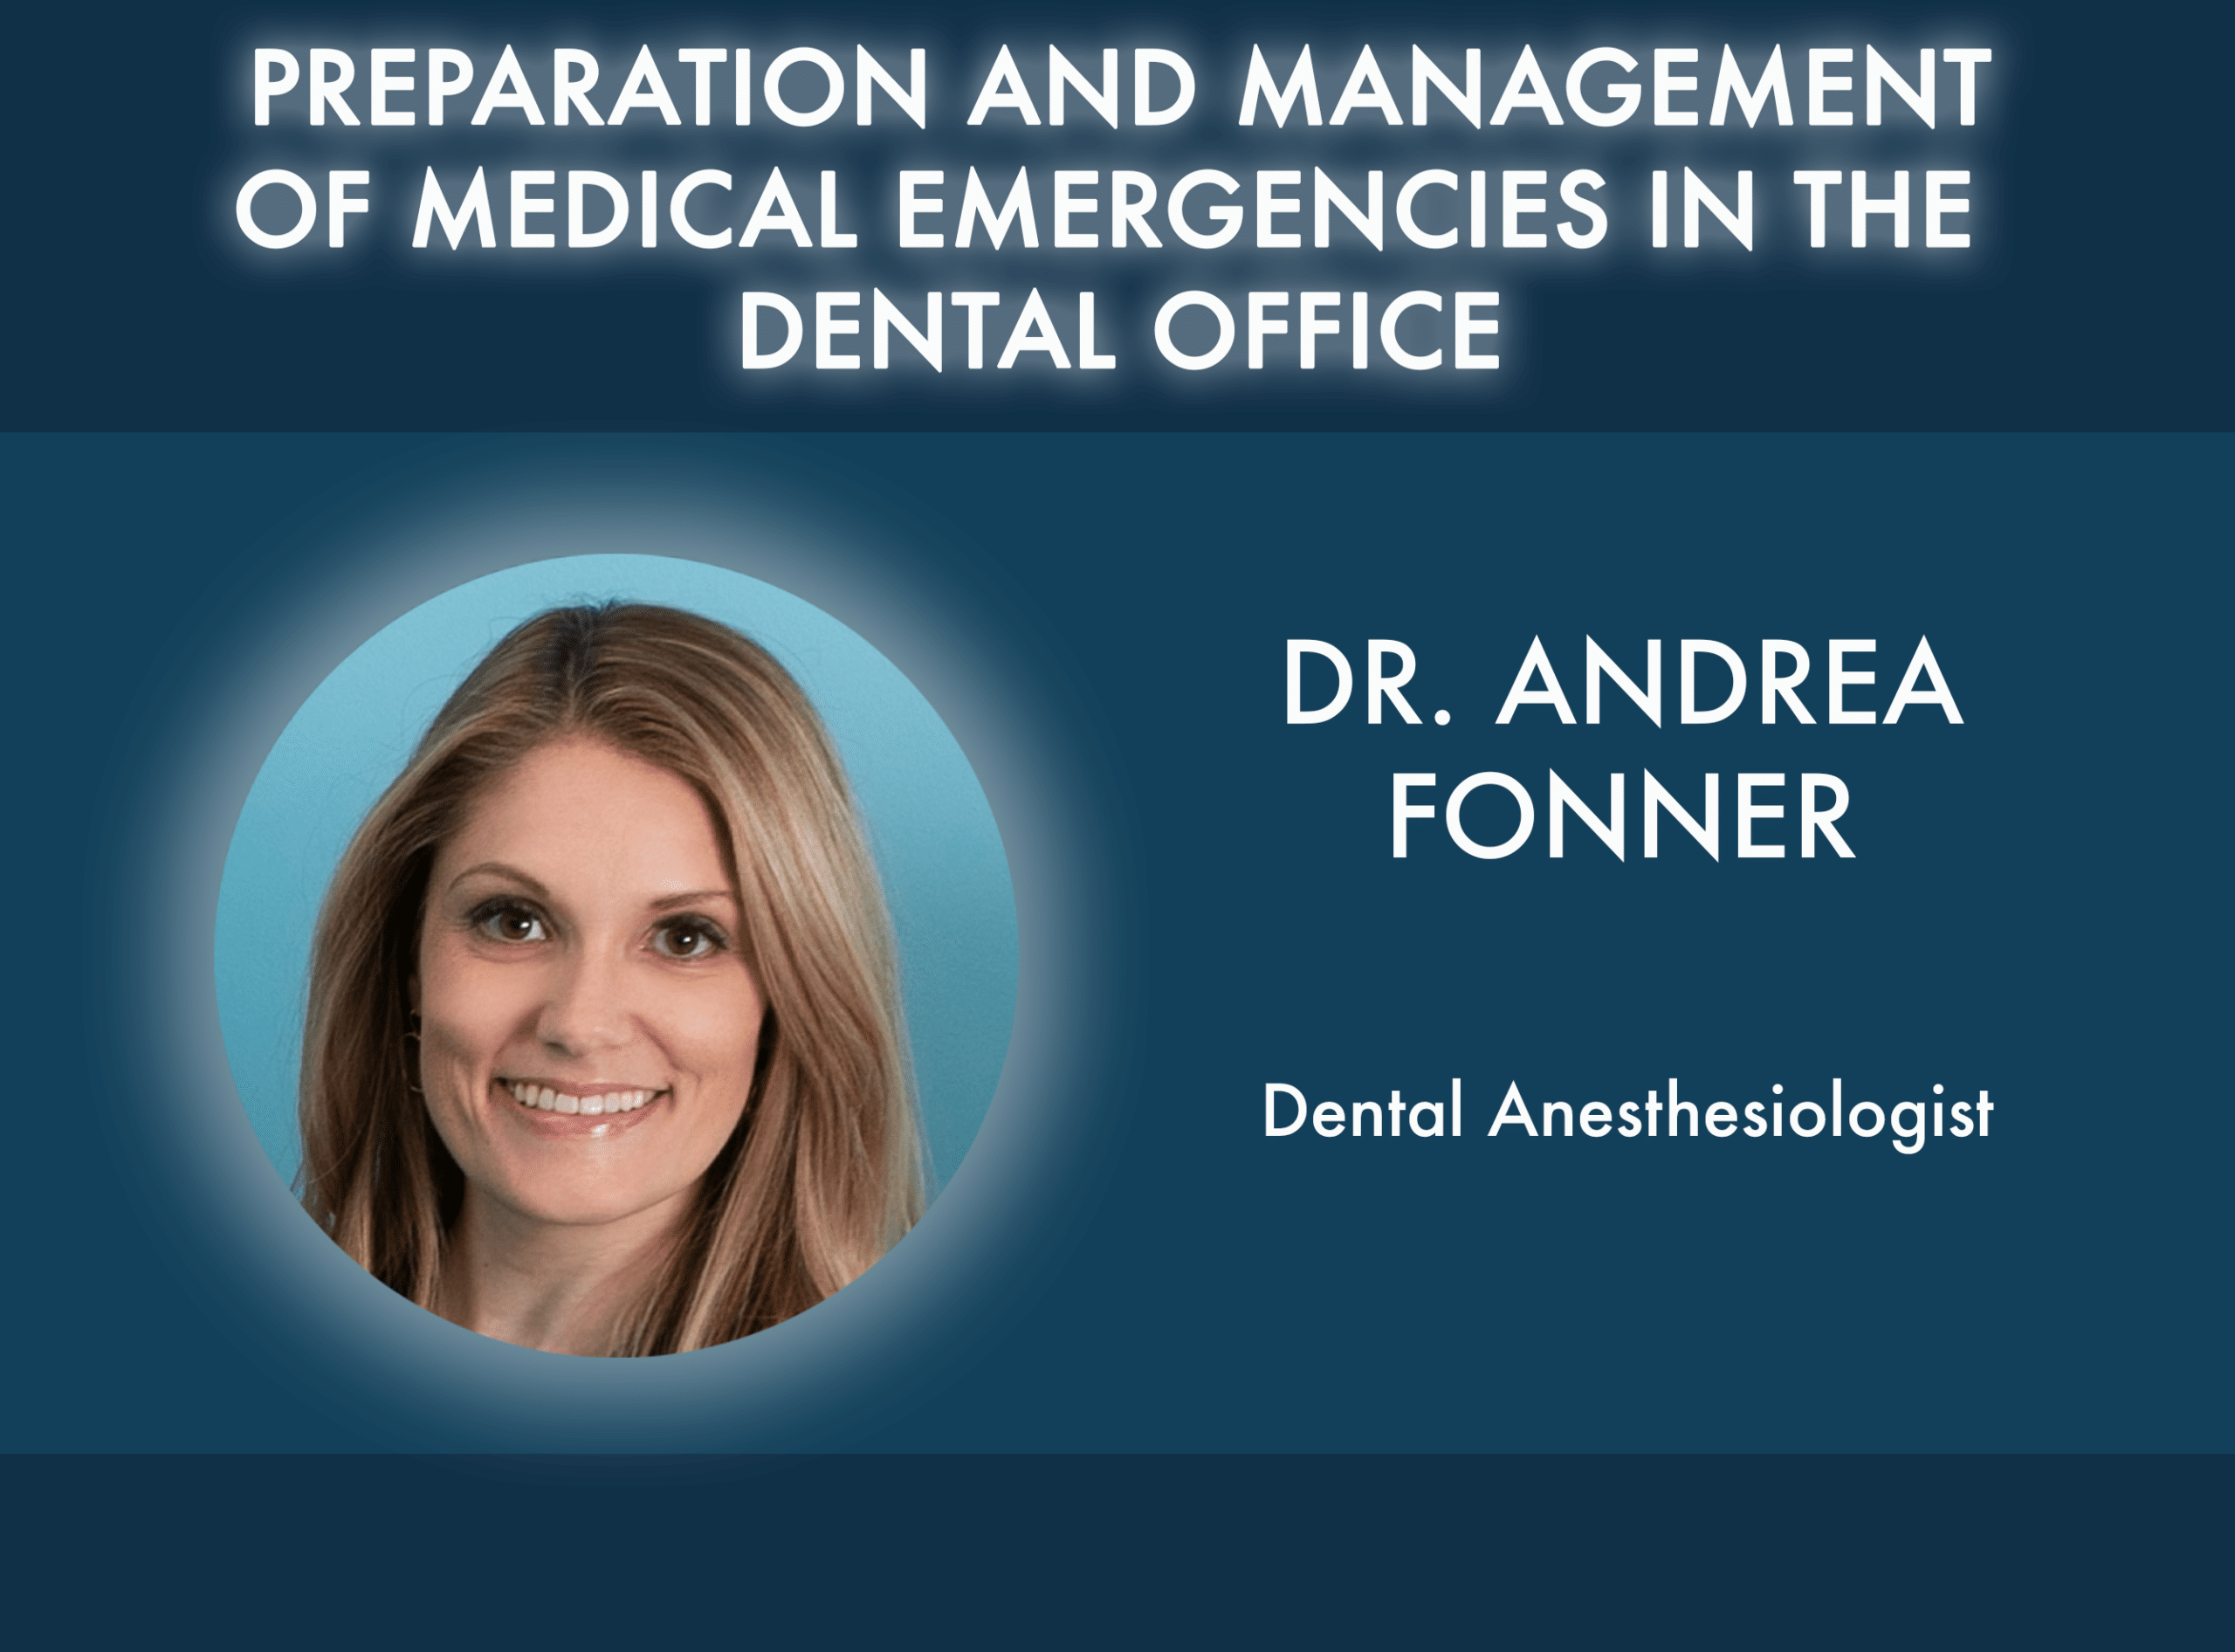 Preparation and Management of Medical Emergencies in the Dental Office